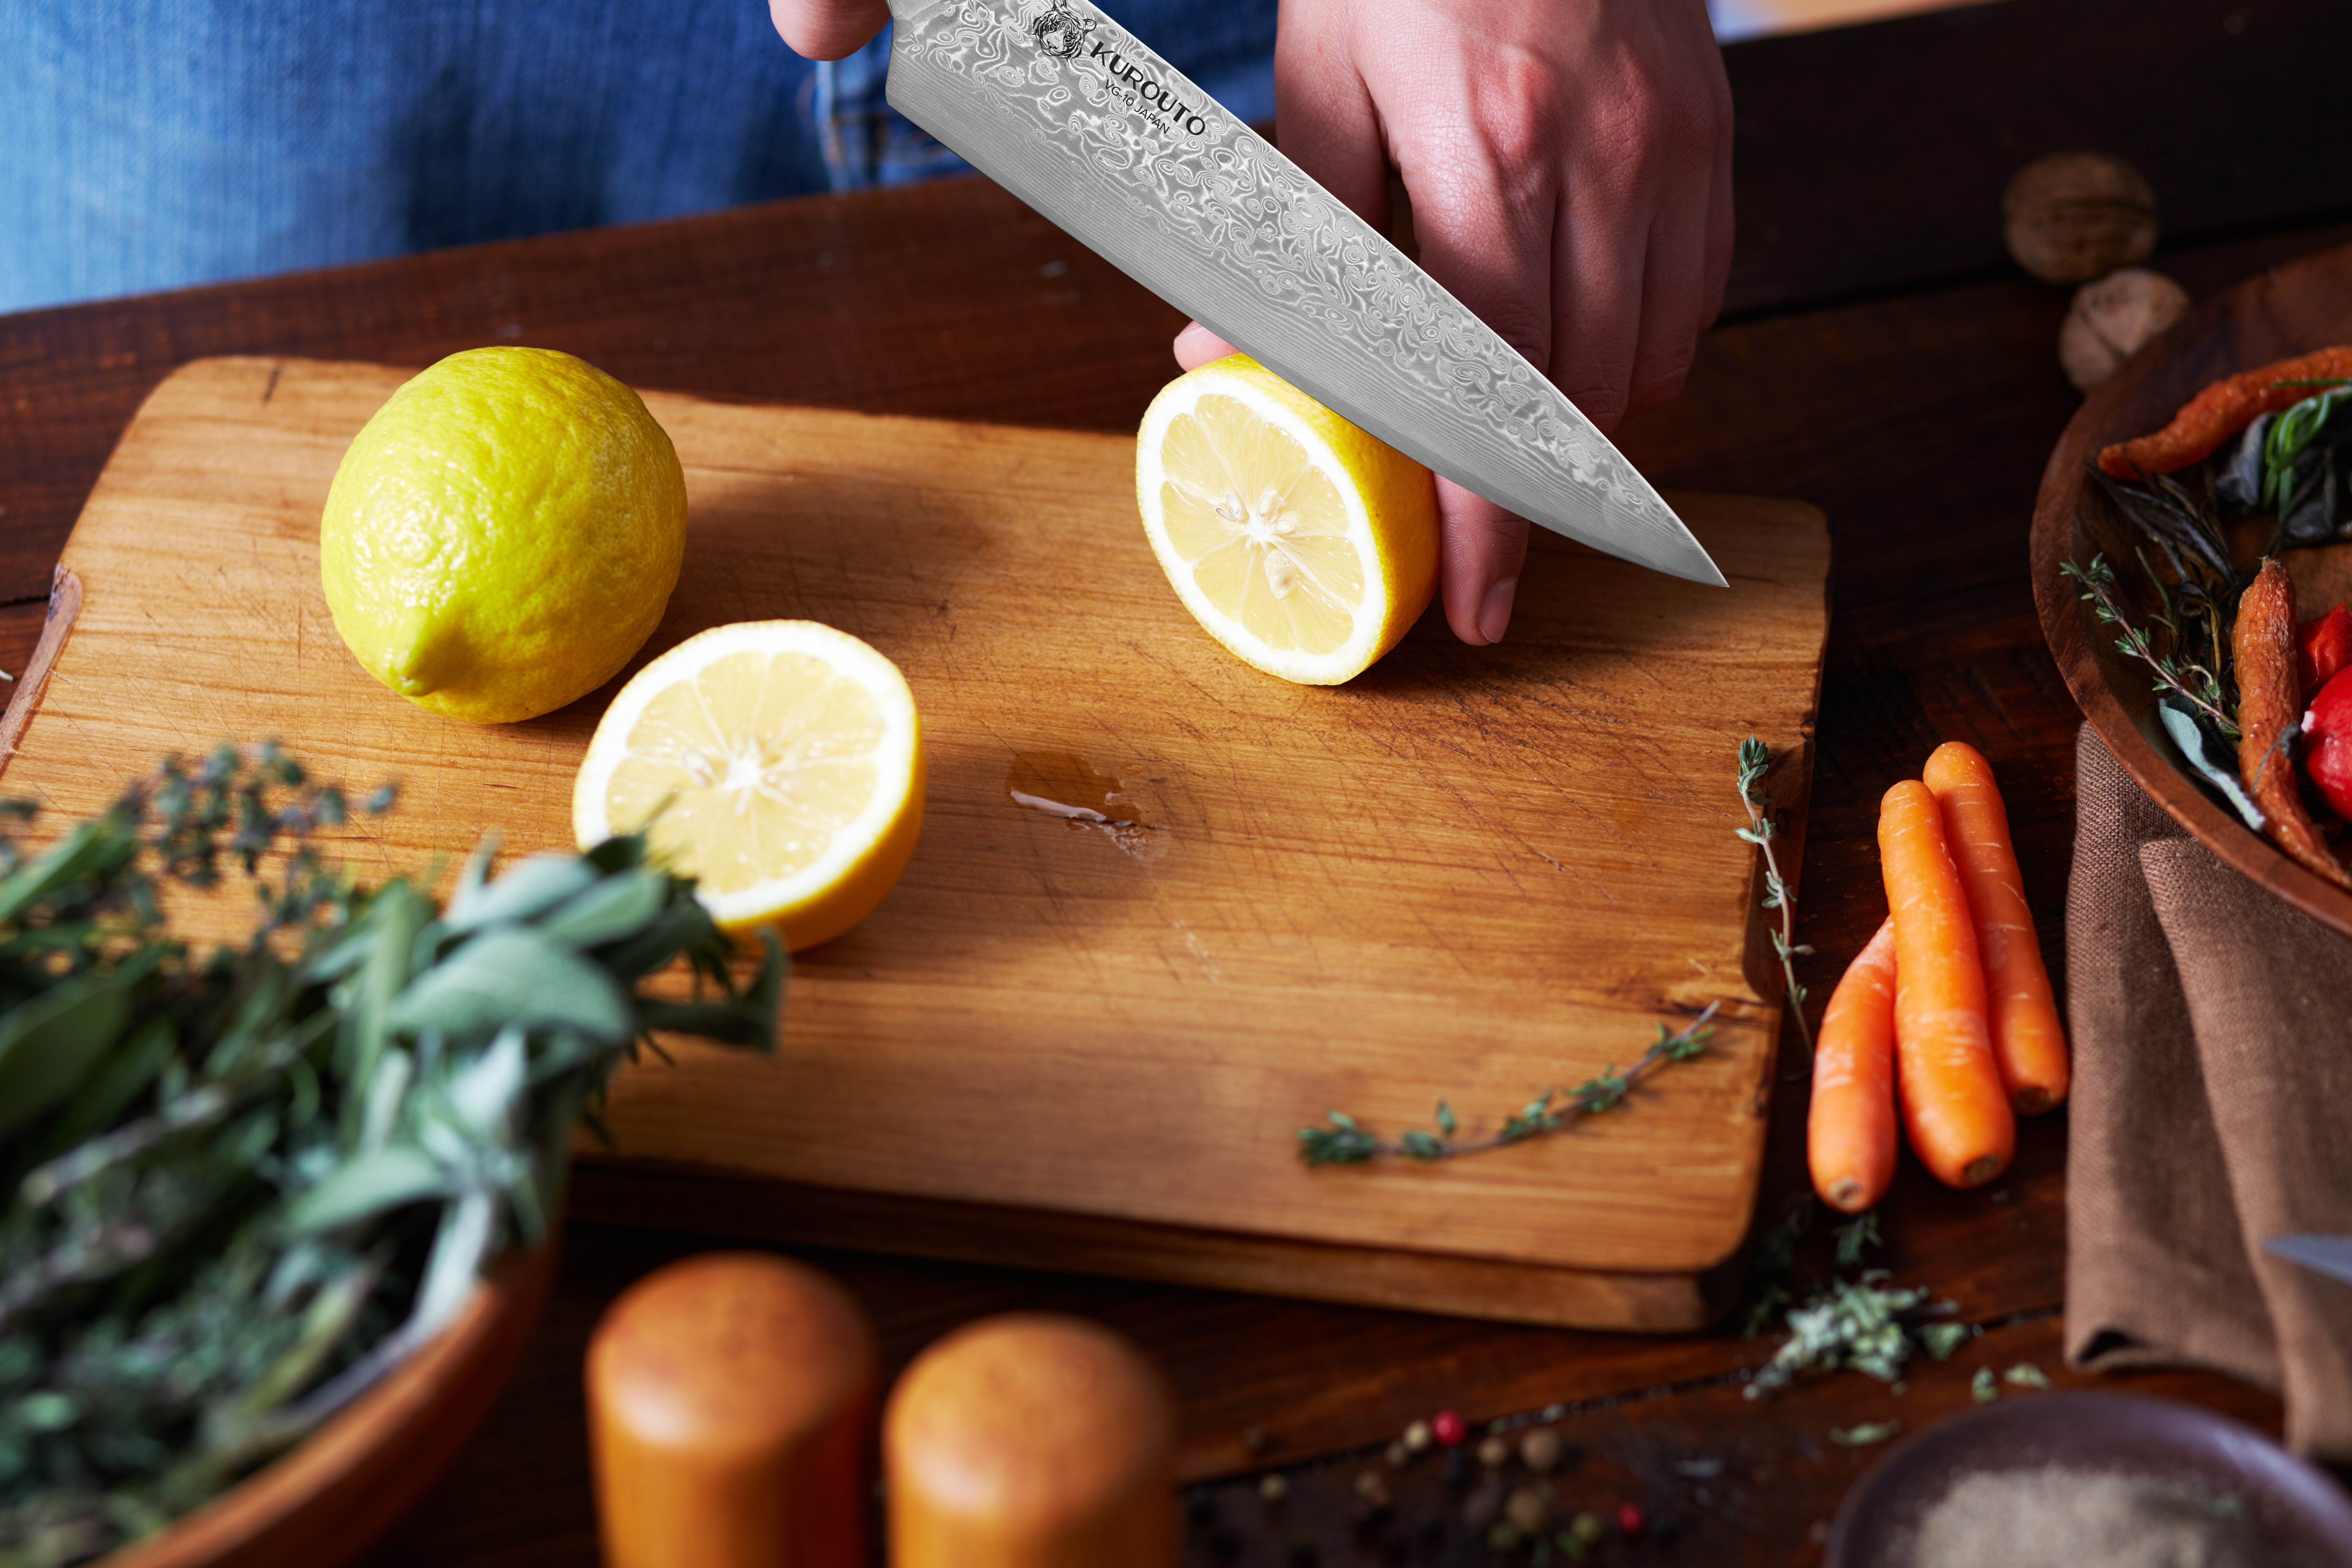 Kurouto Kitchenware Chef's Knife Slicing a Ripe Lemon on a Wooden Cutting Board